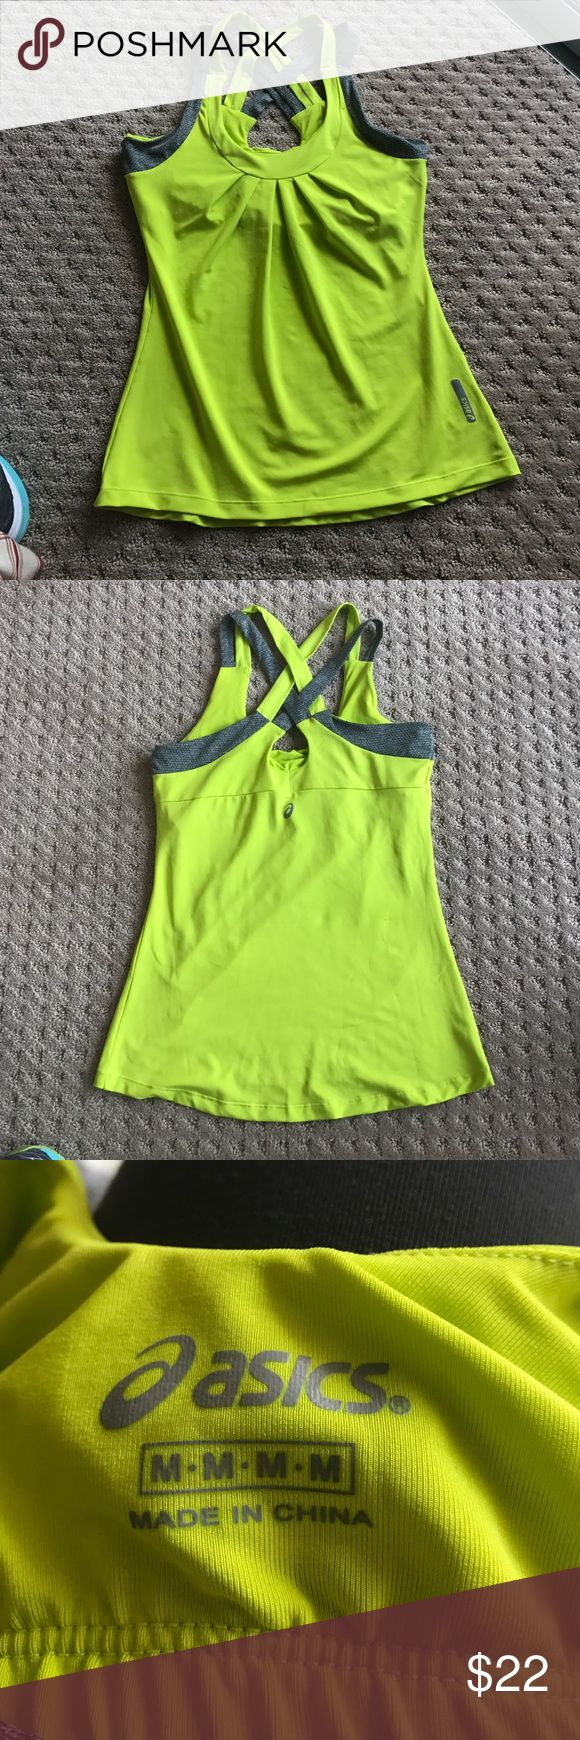 Workout tank built in bra. Stunning lime green workout tank top with built in light support bra. Crisscross straps in back. Grey trim. Pleated bodice. Worn once. Reflective insignia. Asics Tops Tank Tops